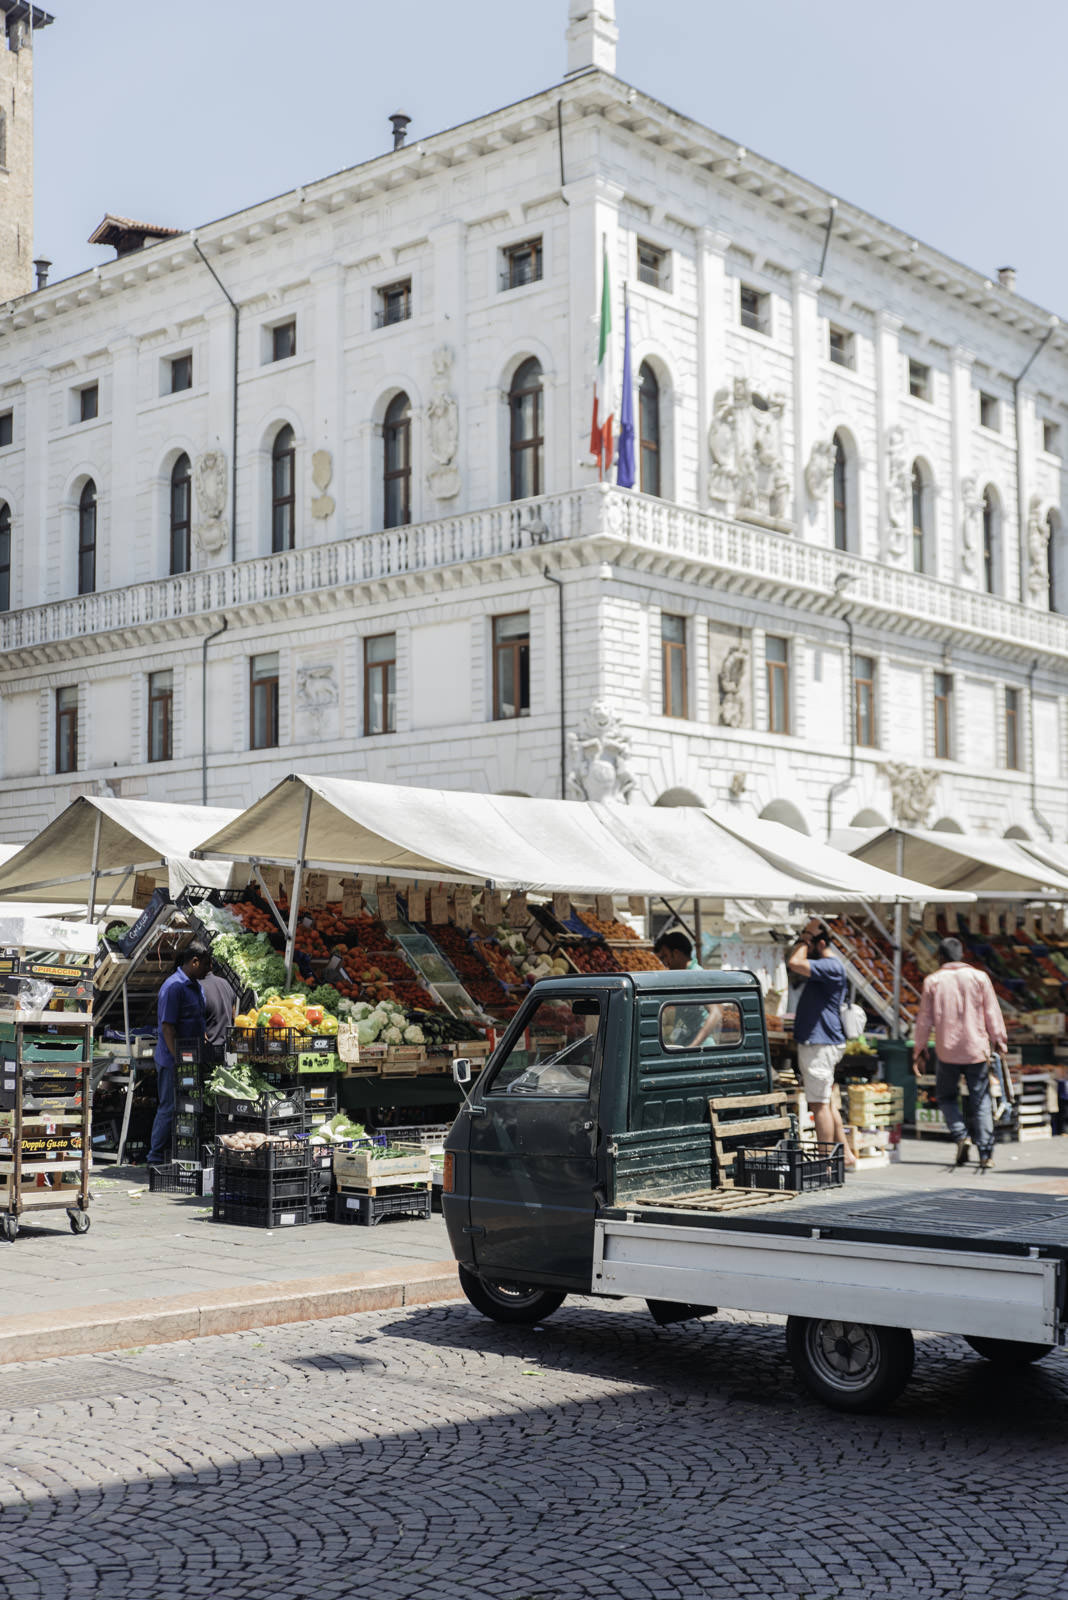 Blog-Mode-And-The-City-Lifestyle-Voyage-Italie-Trieste-Padoue-lac-Come-Verone-4